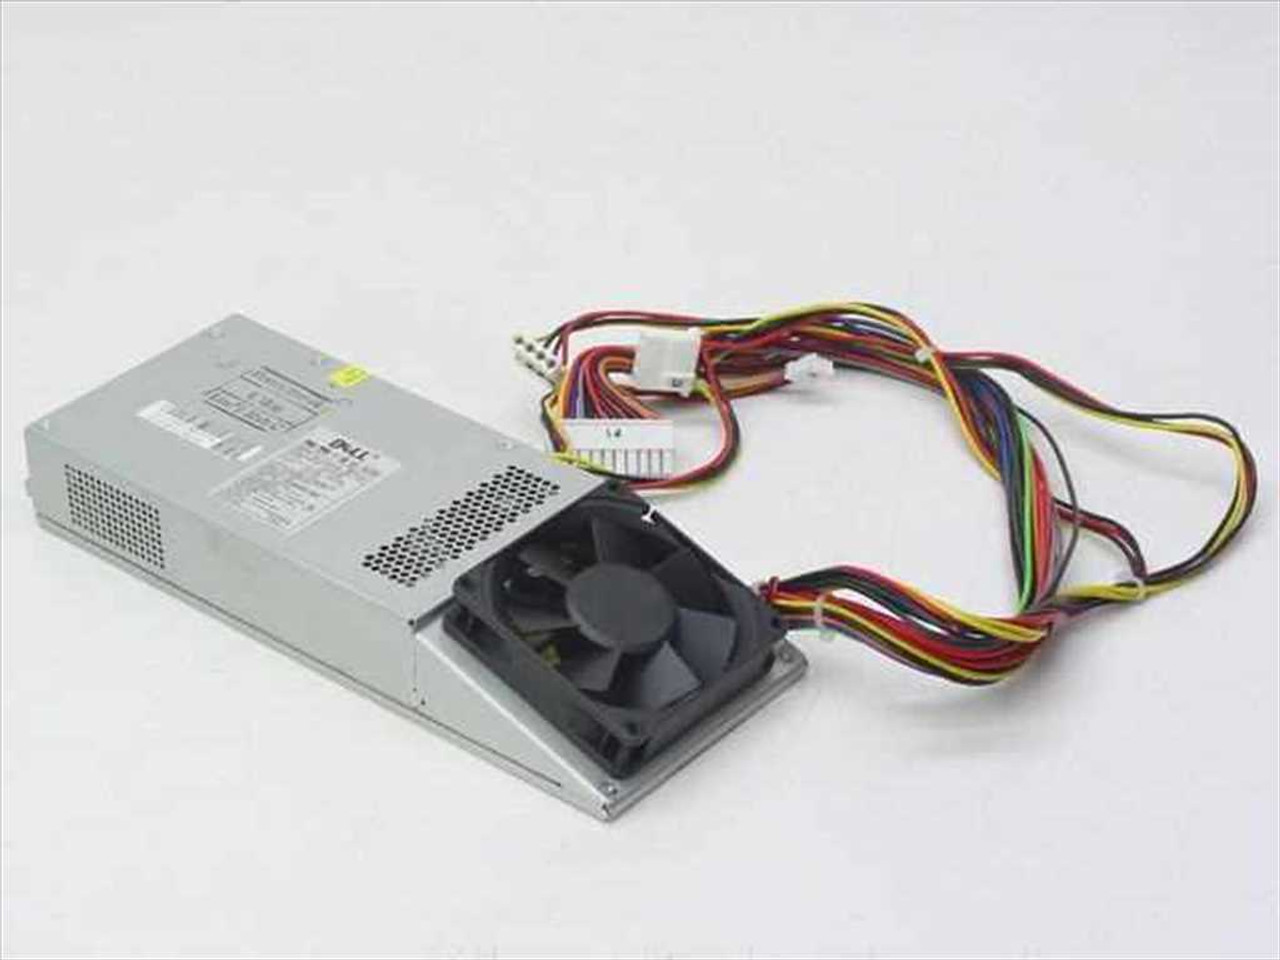 DELL OPTIPLEX GX150 SOUND DRIVERS FOR MAC